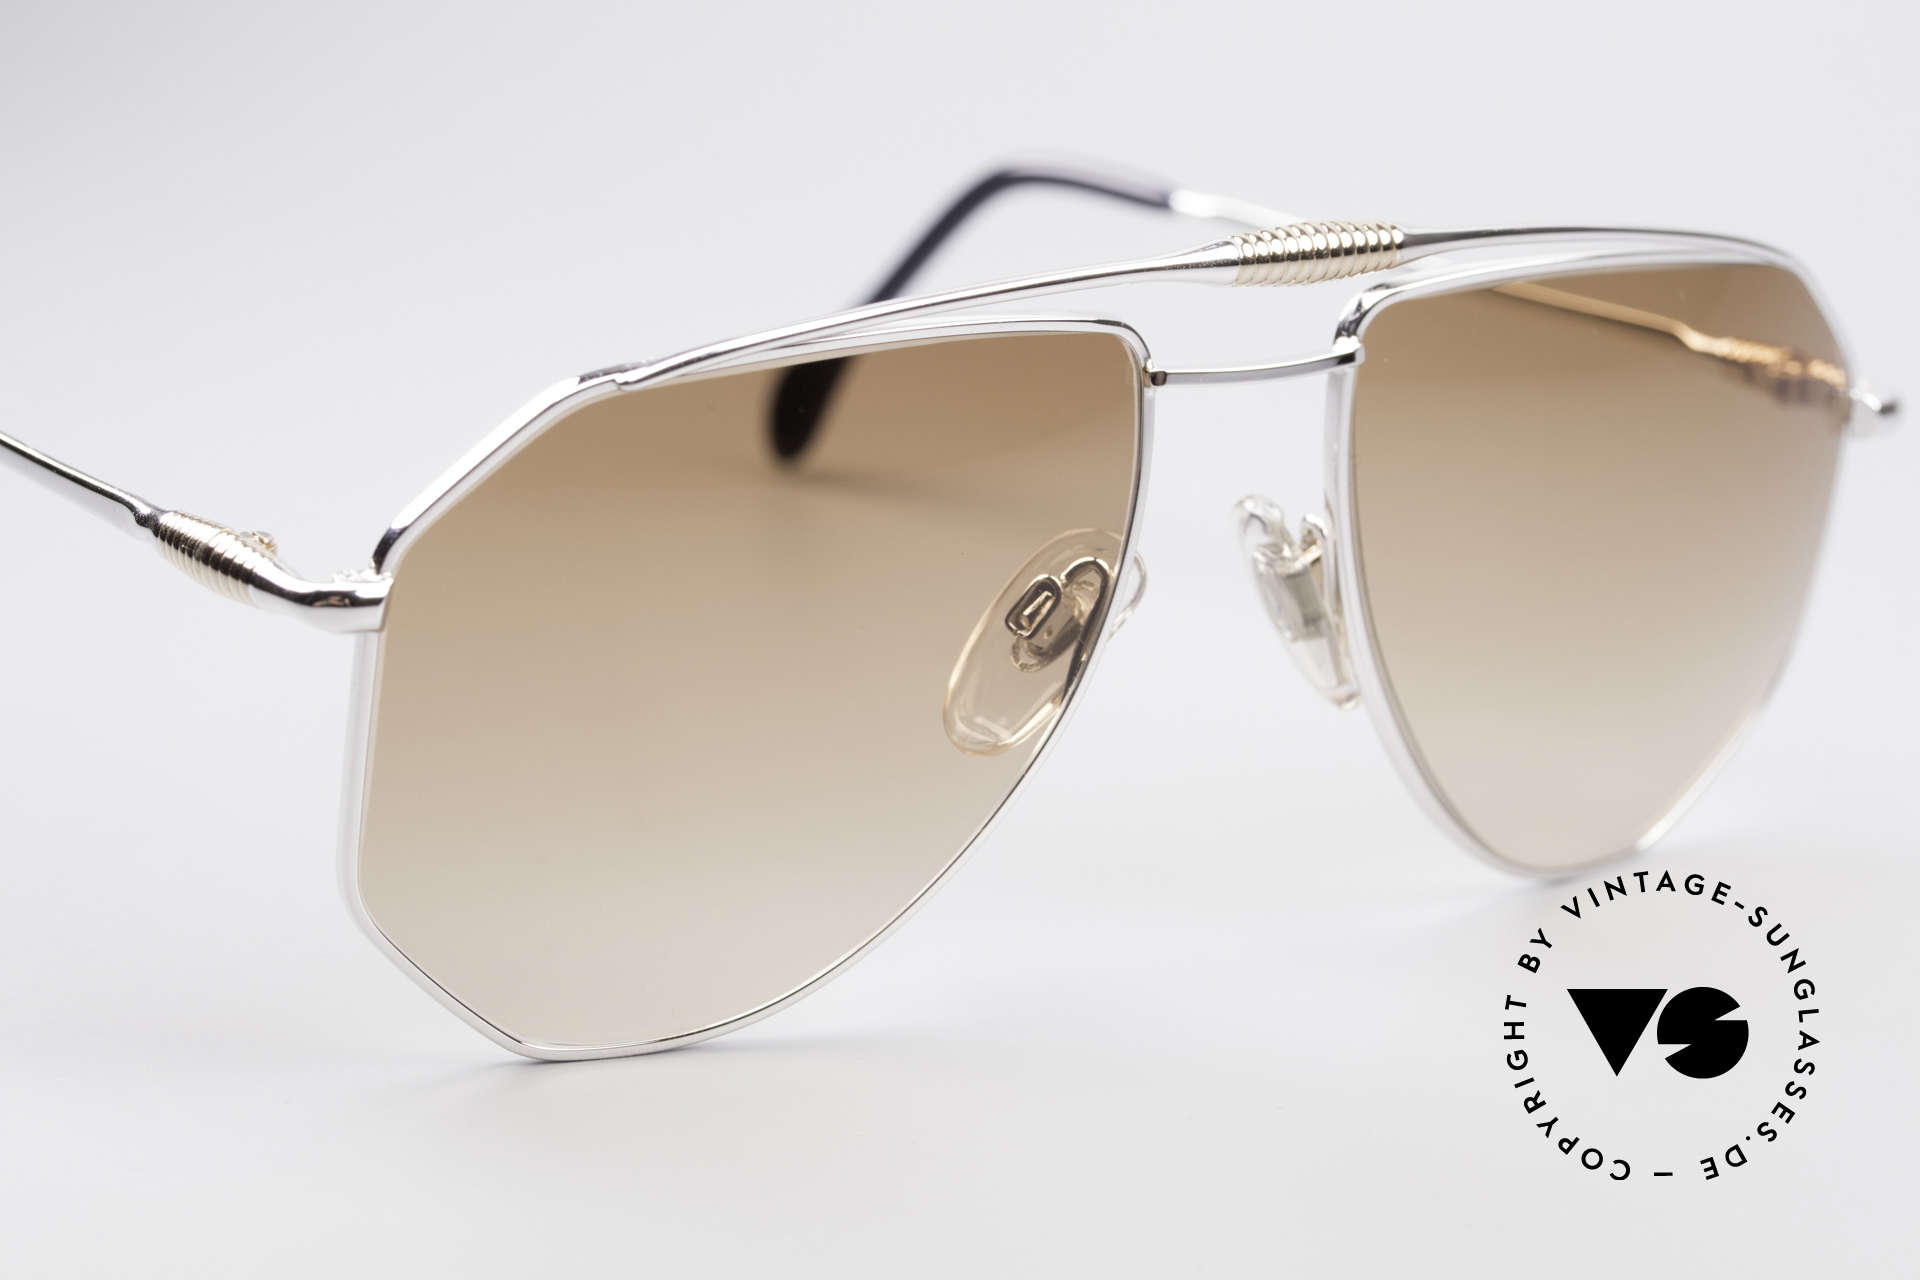 Zollitsch Cadre 120 Large 80's Aviator Shades, NO retro shades, but a 30 years old original, L size 58/18, Made for Men